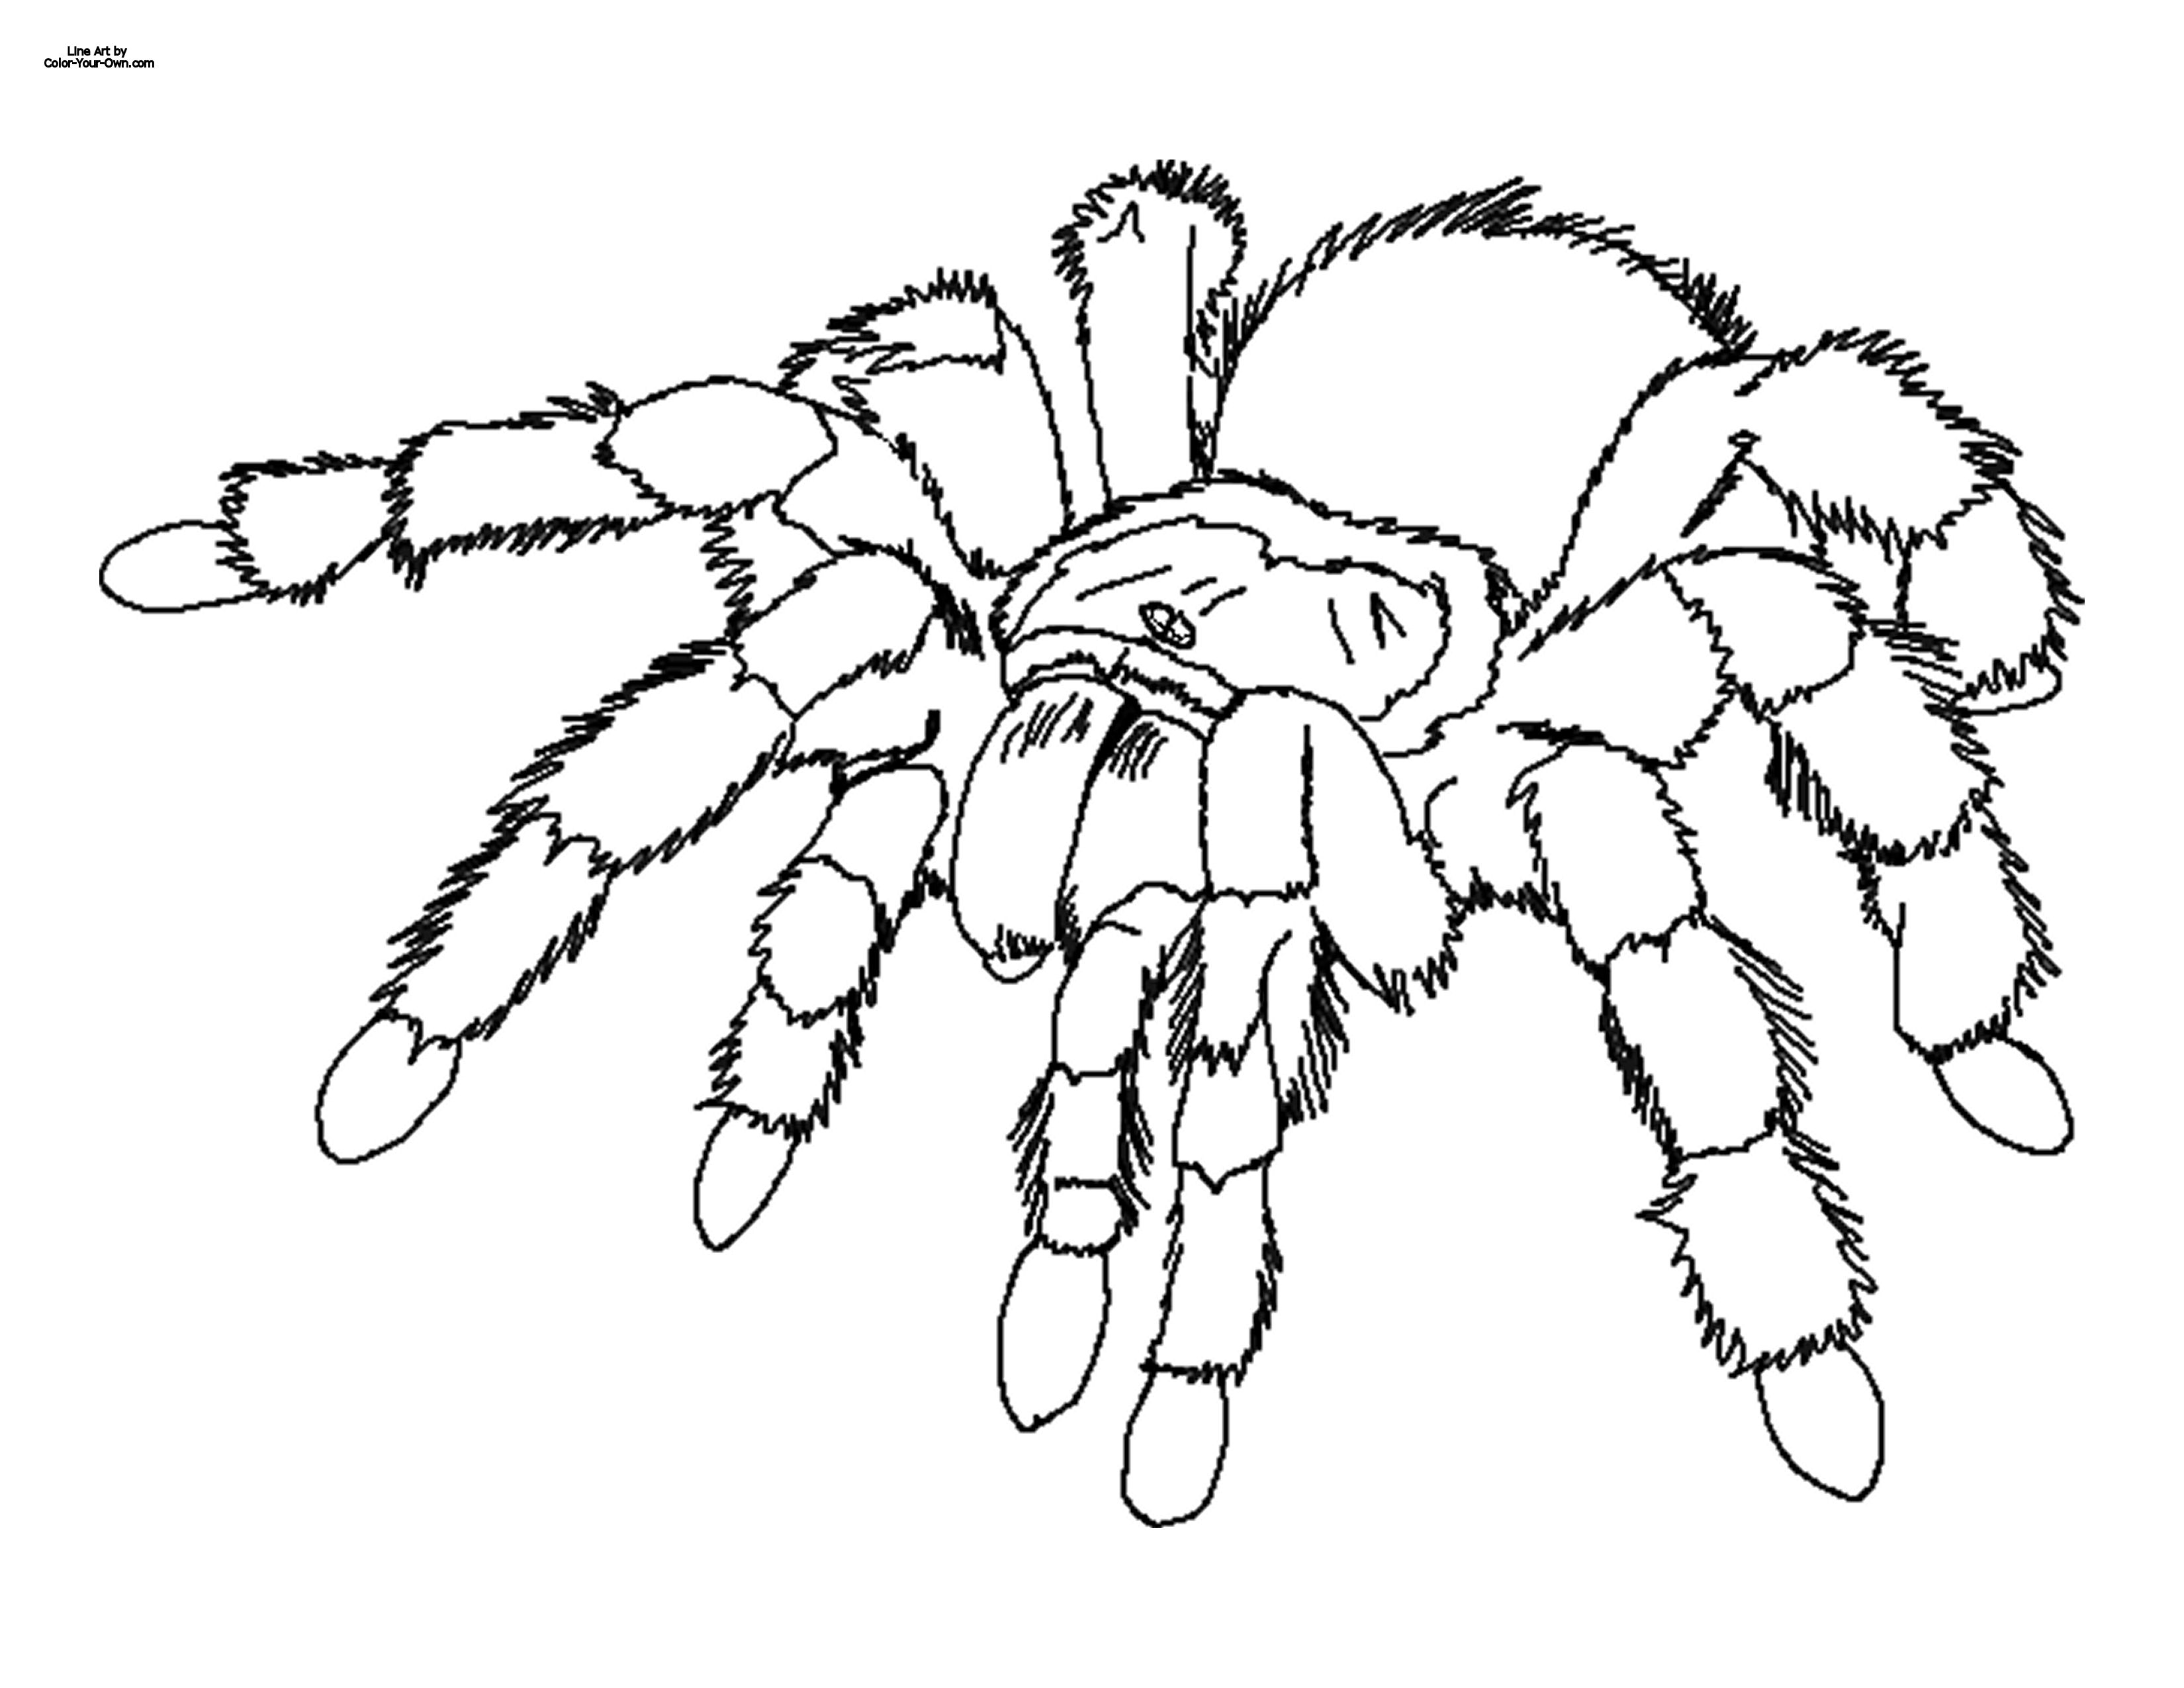 Adult Cute Tarantula Coloring Pages Gallery Images beauty hairy legged tarantula coloring page click here for the free printable 8 5 by 11 inch paper then print on your browser gallery images